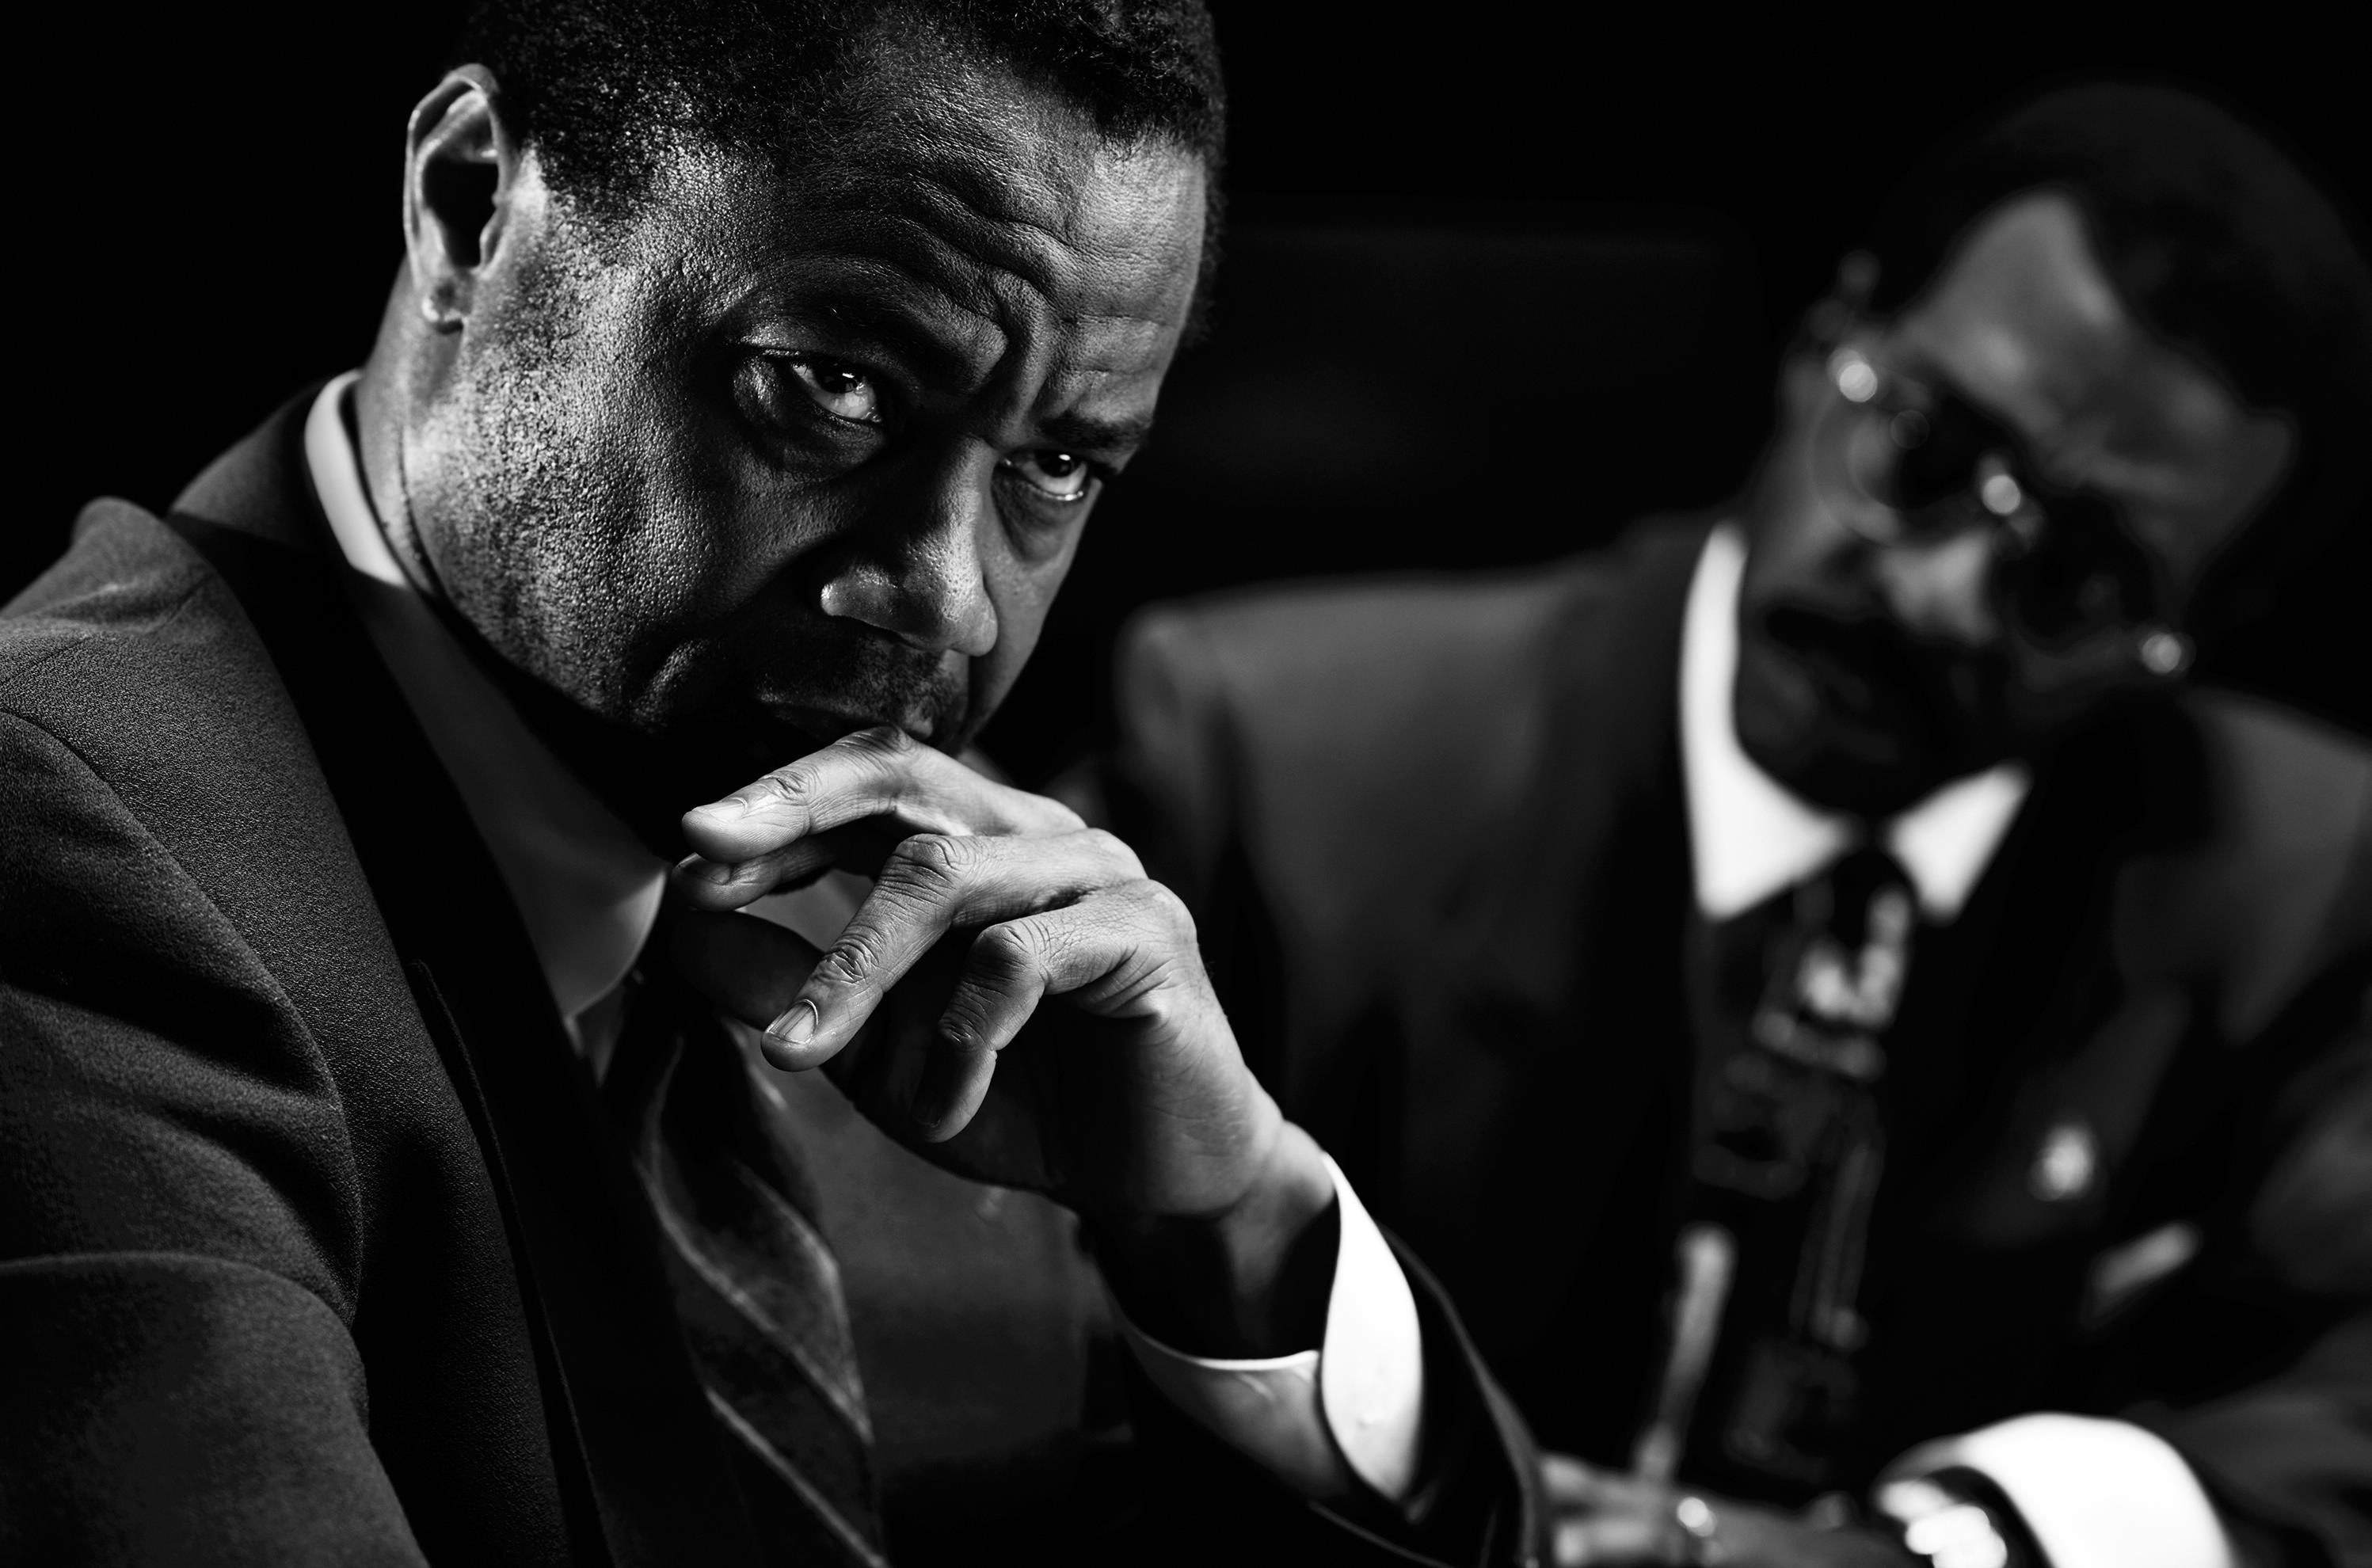 Cuba Gooding Jr. on his 2016 Emmy nomination: